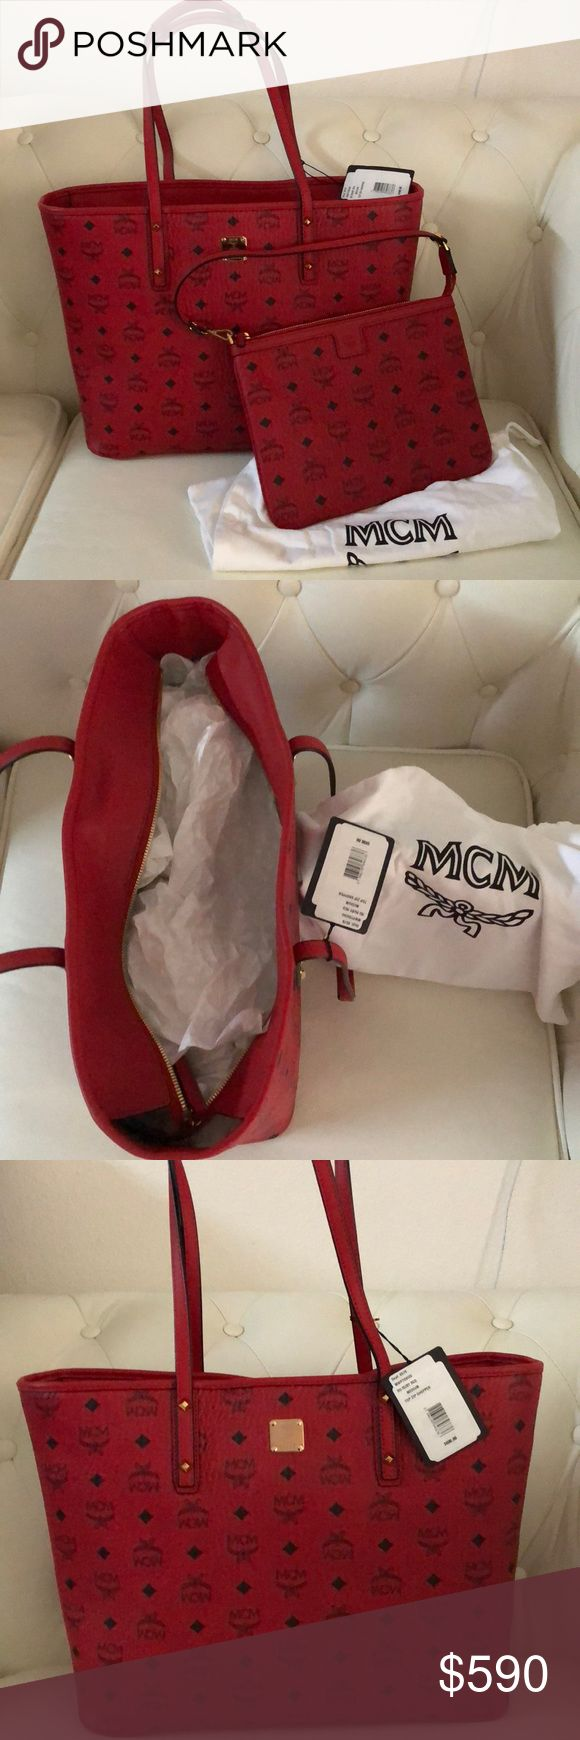 MCM Anya Medium Tote, Ruby Red Brand New from Saks! Jan2018. Never carried! Comes with all care/authenticity cards, the zippered pouch & two dust bags—including one that fits the pouch perfectly! Pouch can be sold separately for $250 firm. Please submit suitable offers using the offer button! No trades, sell only! Enjoy!! MCM Bags Totes